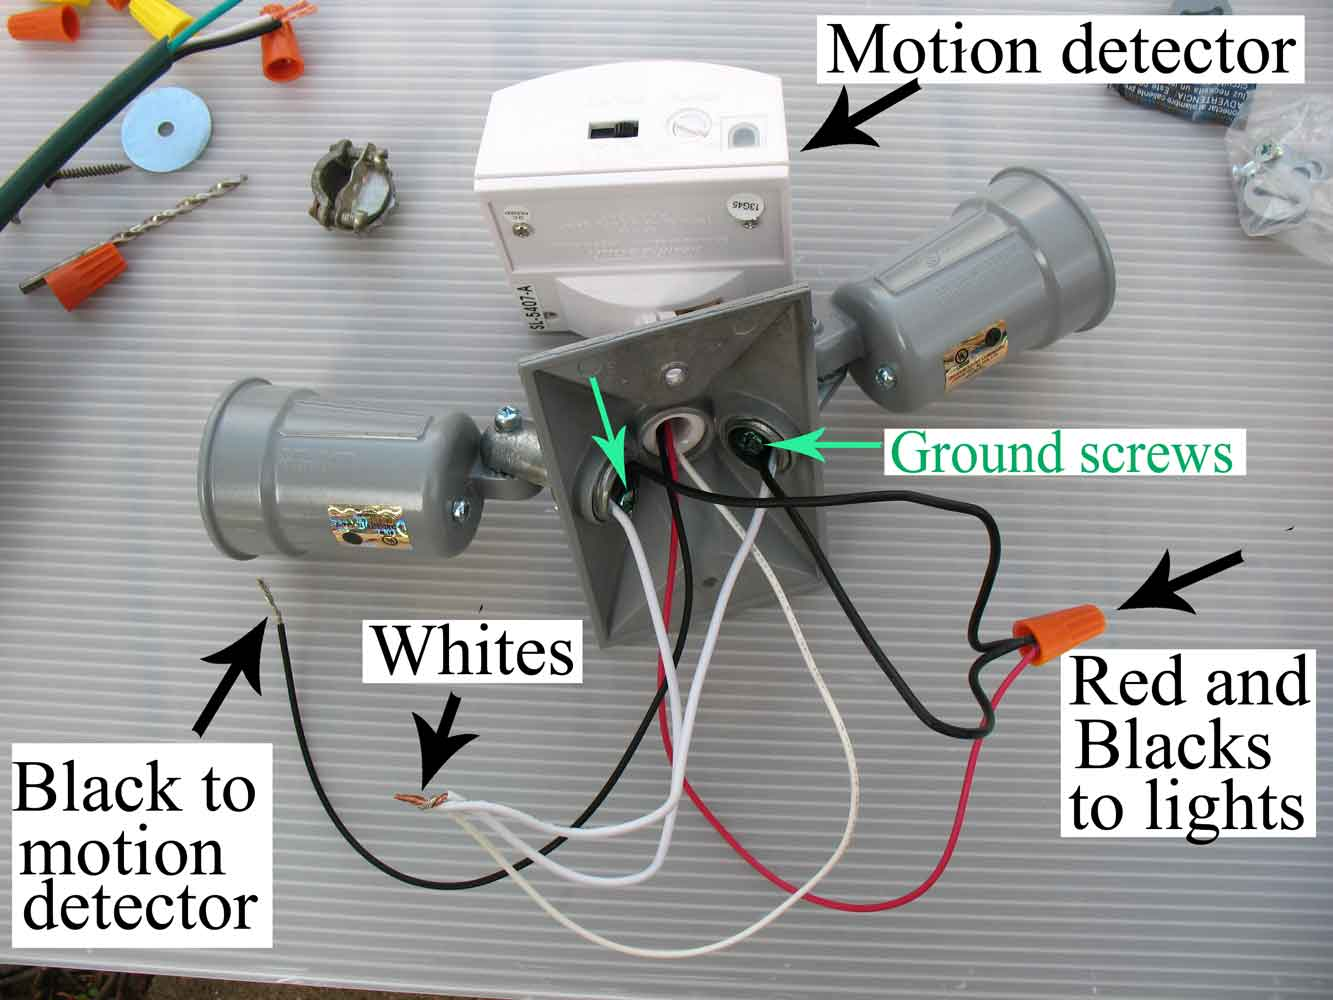 IMG_0014 Motion detector?resize=665%2C499 motion sensor flood light wiring diagram wiring diagram Motion Sensing Light Schematic at gsmx.co